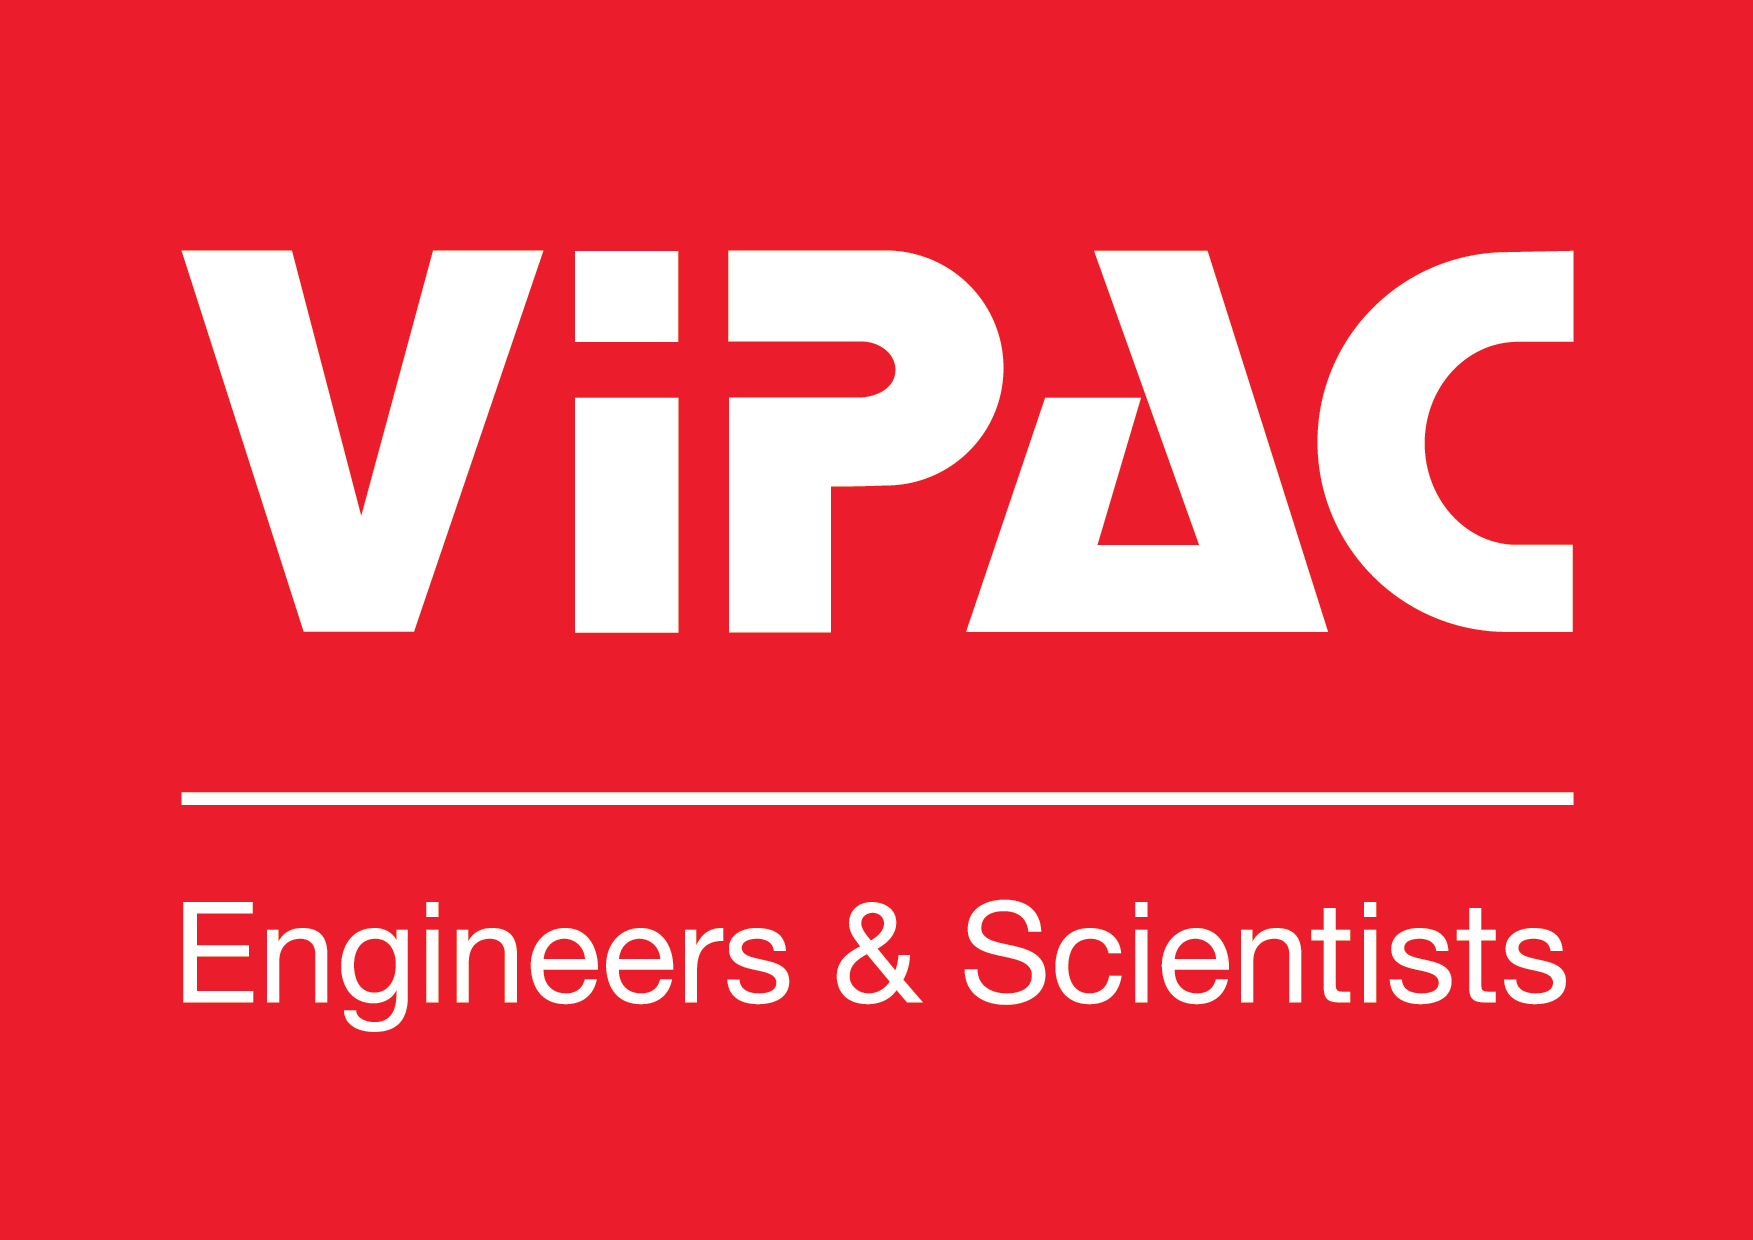 Vipac Engineers & Scientists Ltd